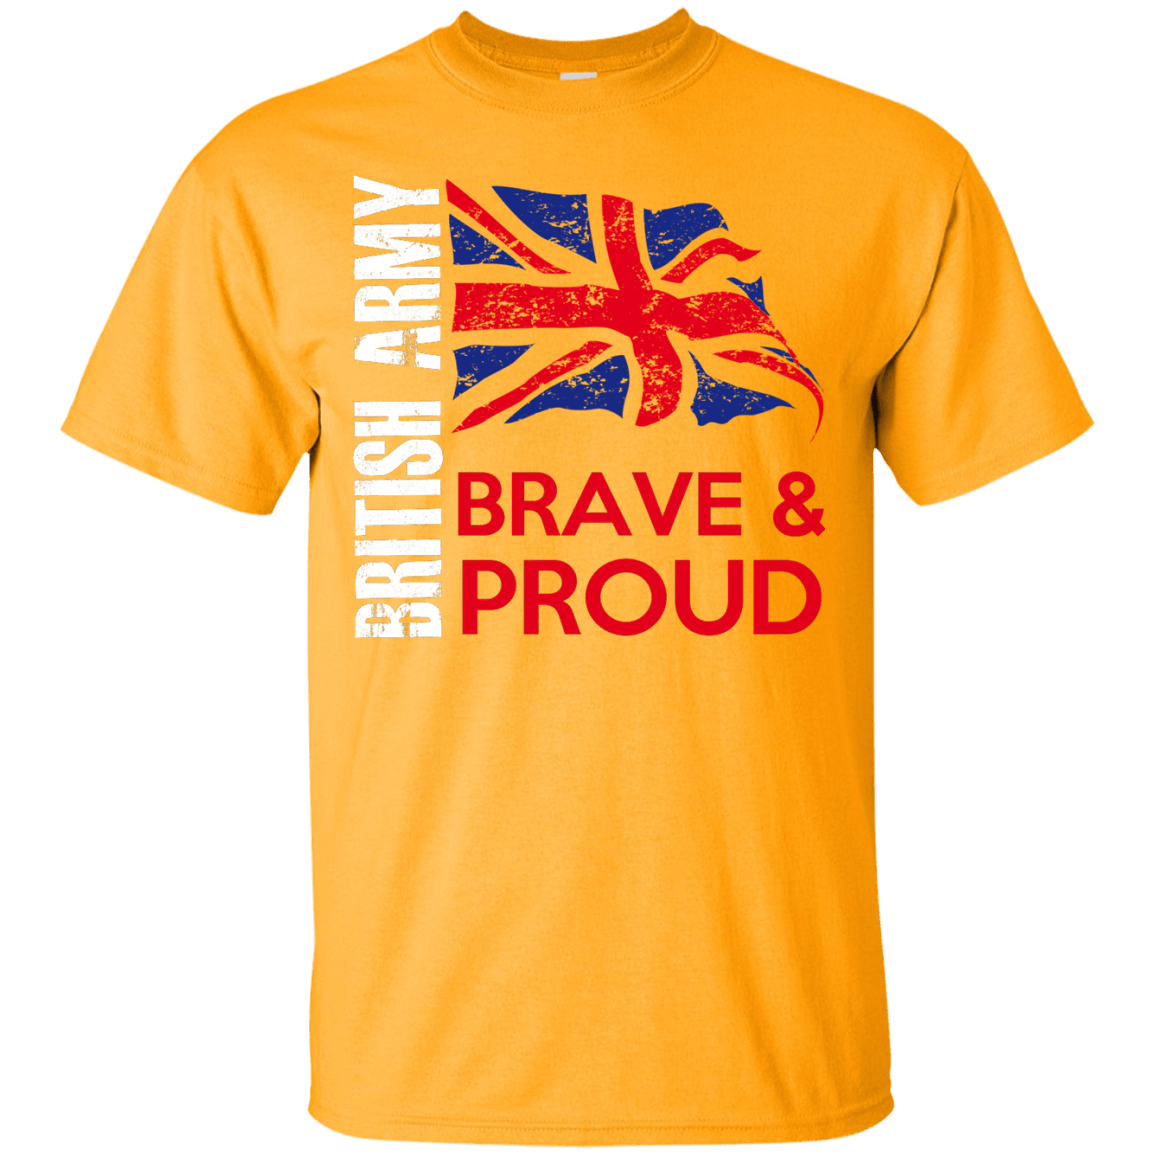 British Army themed T-Shirts and Hoodies for Men and Women